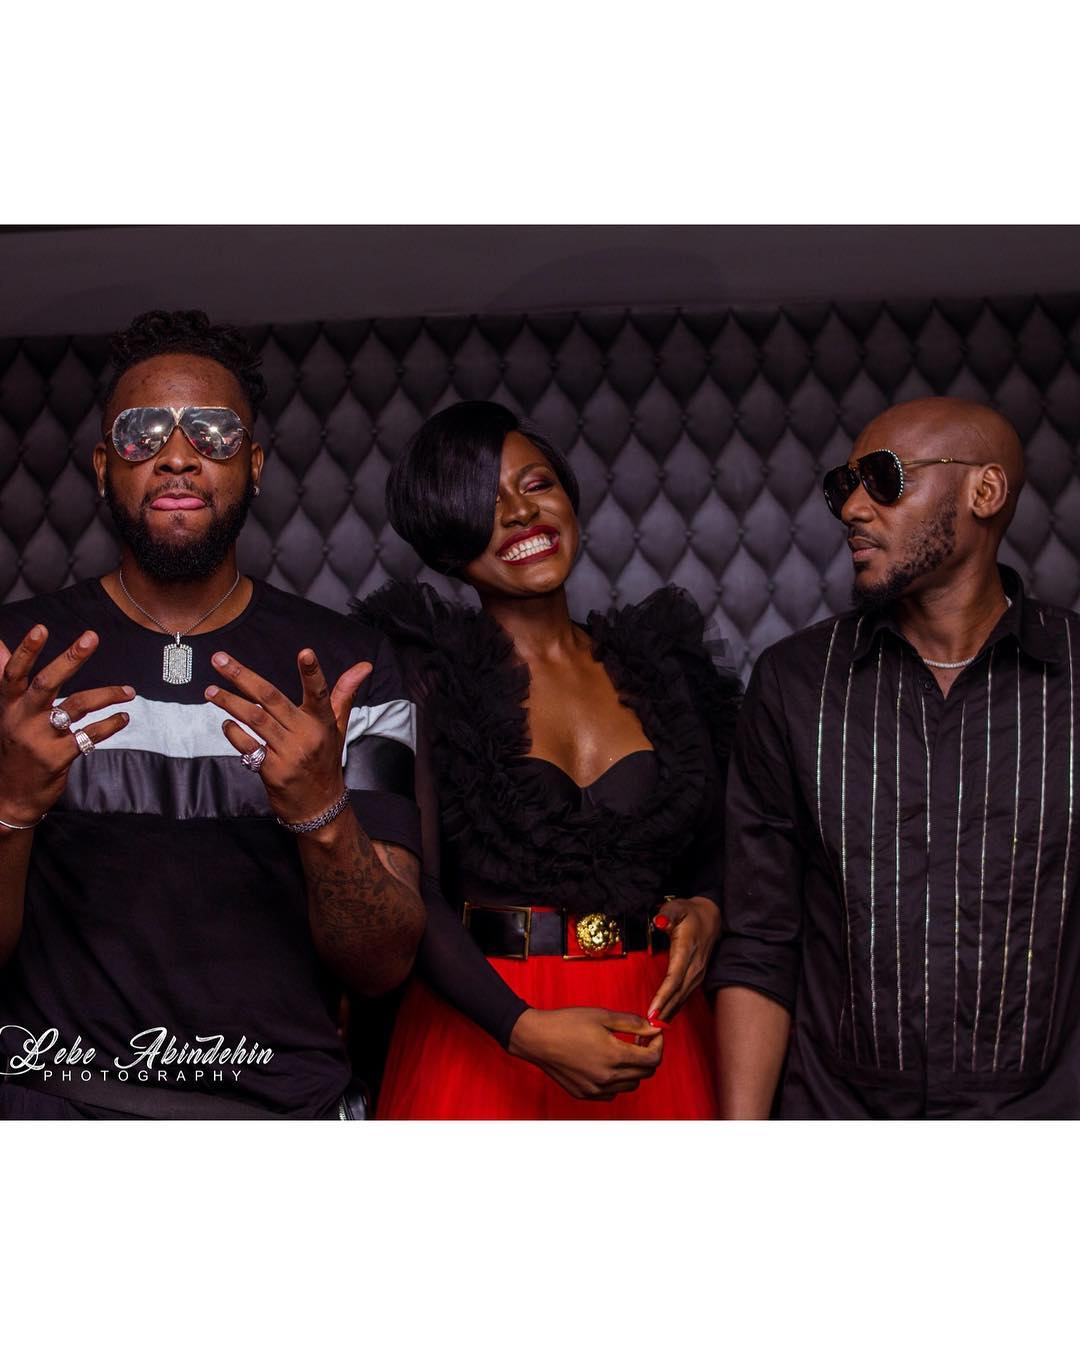 9169050 al jpeg495cae3108a2efb2ae07bae038090dcf - BBNaija Alex spotted with TeddyA and 2baba at Campari Lagos Party [Photos]